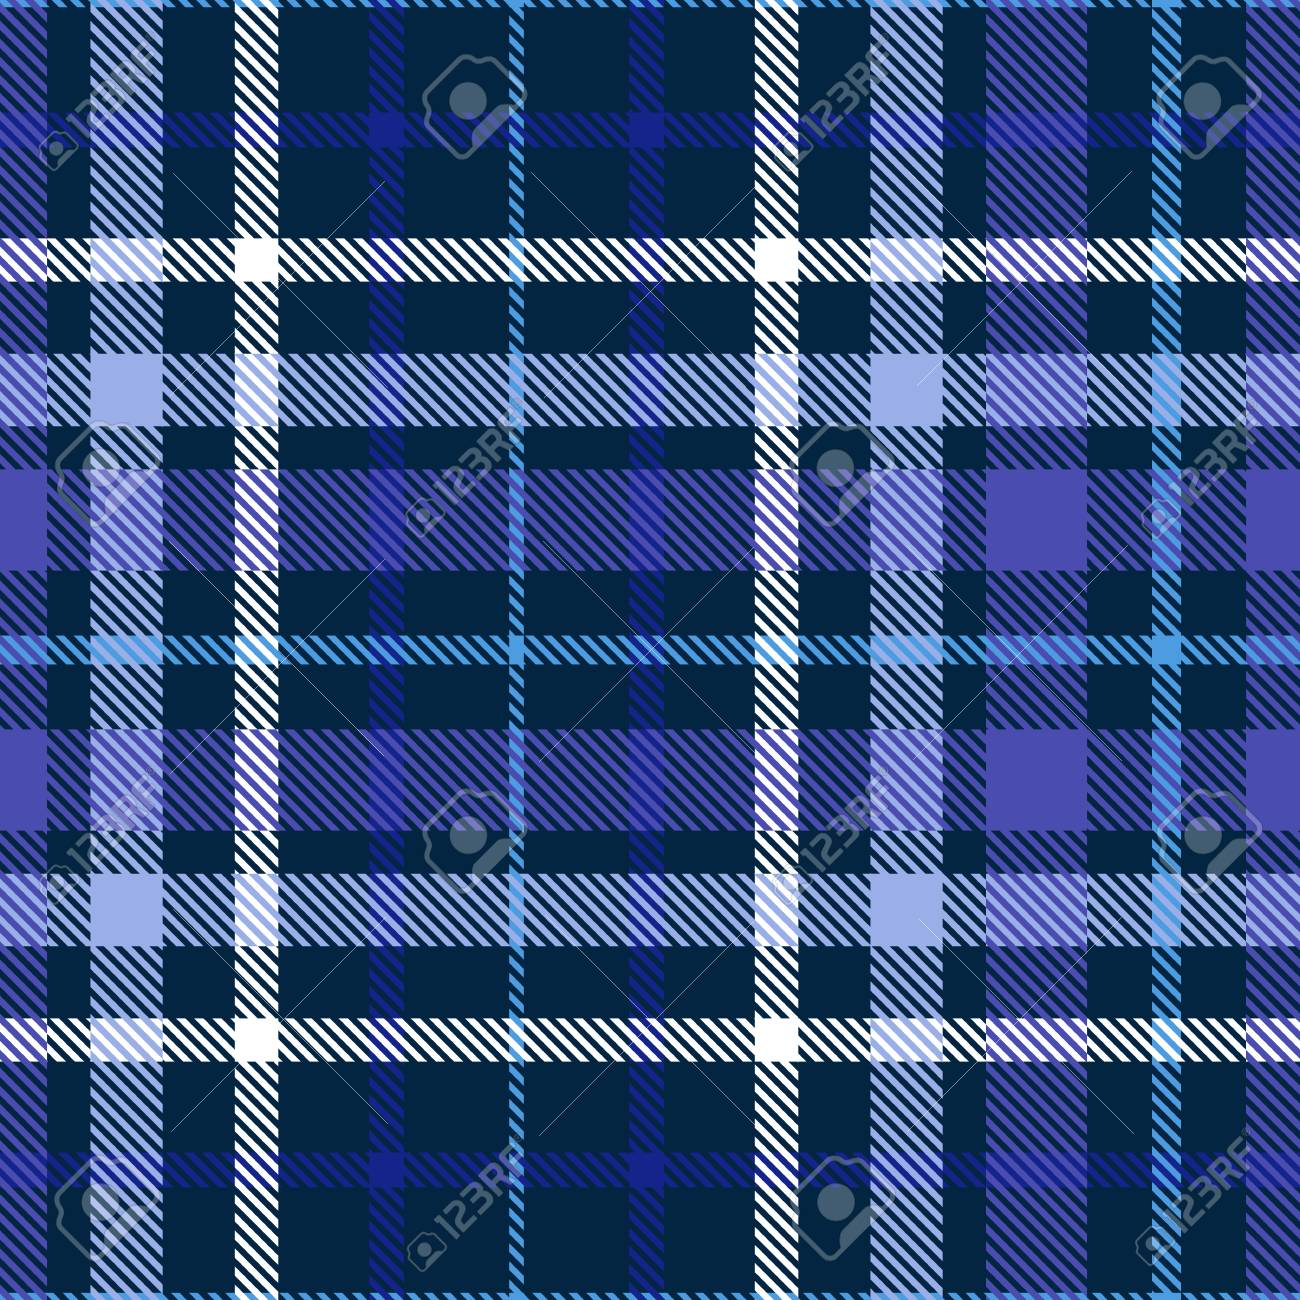 Plaid Pattern In Shades Of Blue Indigo Violet And White Seamless Royalty Free Cliparts Vectors And Stock Illustration Image 121997292